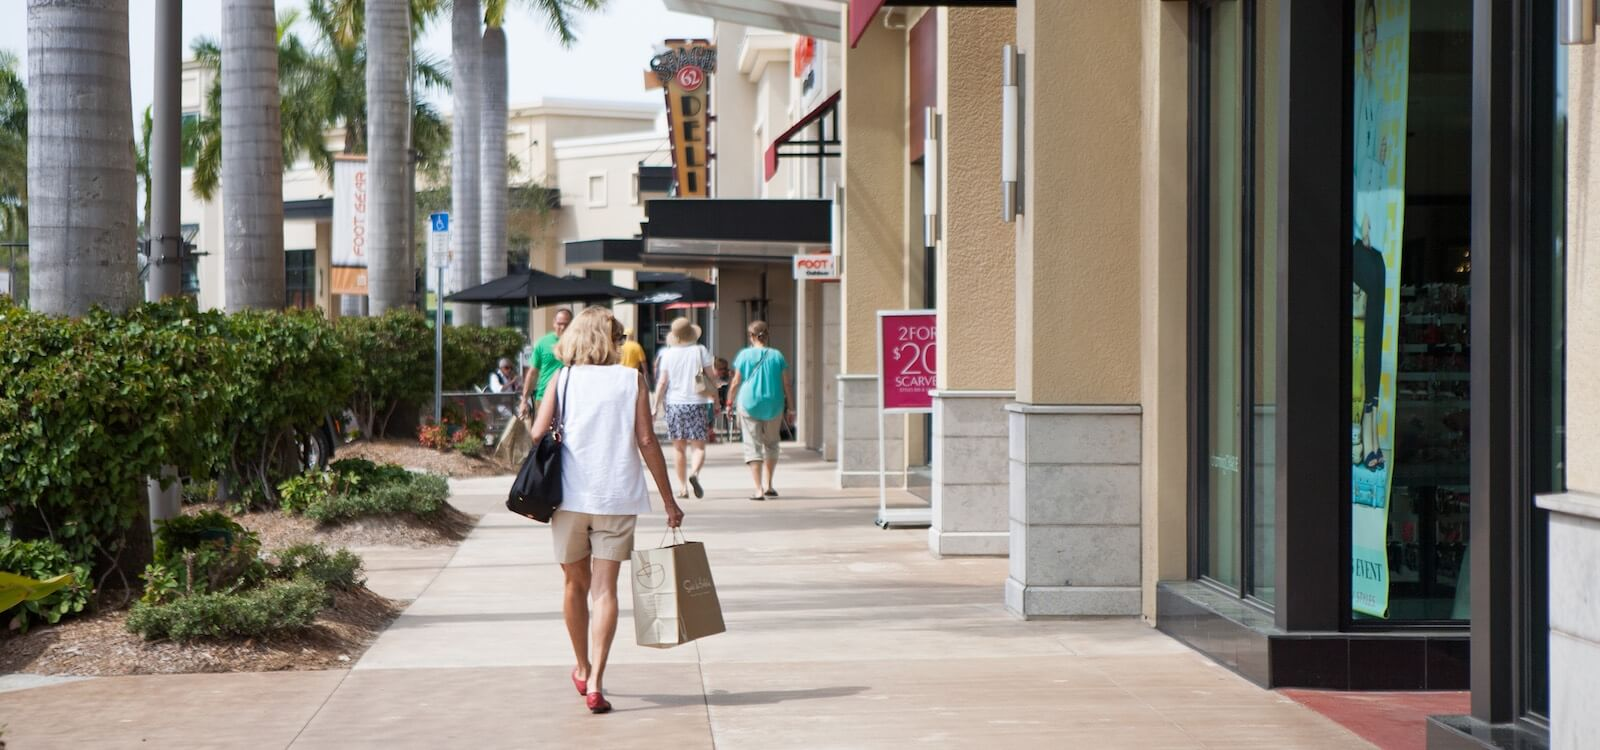 MustDo.com | Naples, Florida best shopping spots. include the Mercato, 5th Avenue South, and Third Street South. Photo by Mary Carol Fitzgerald.